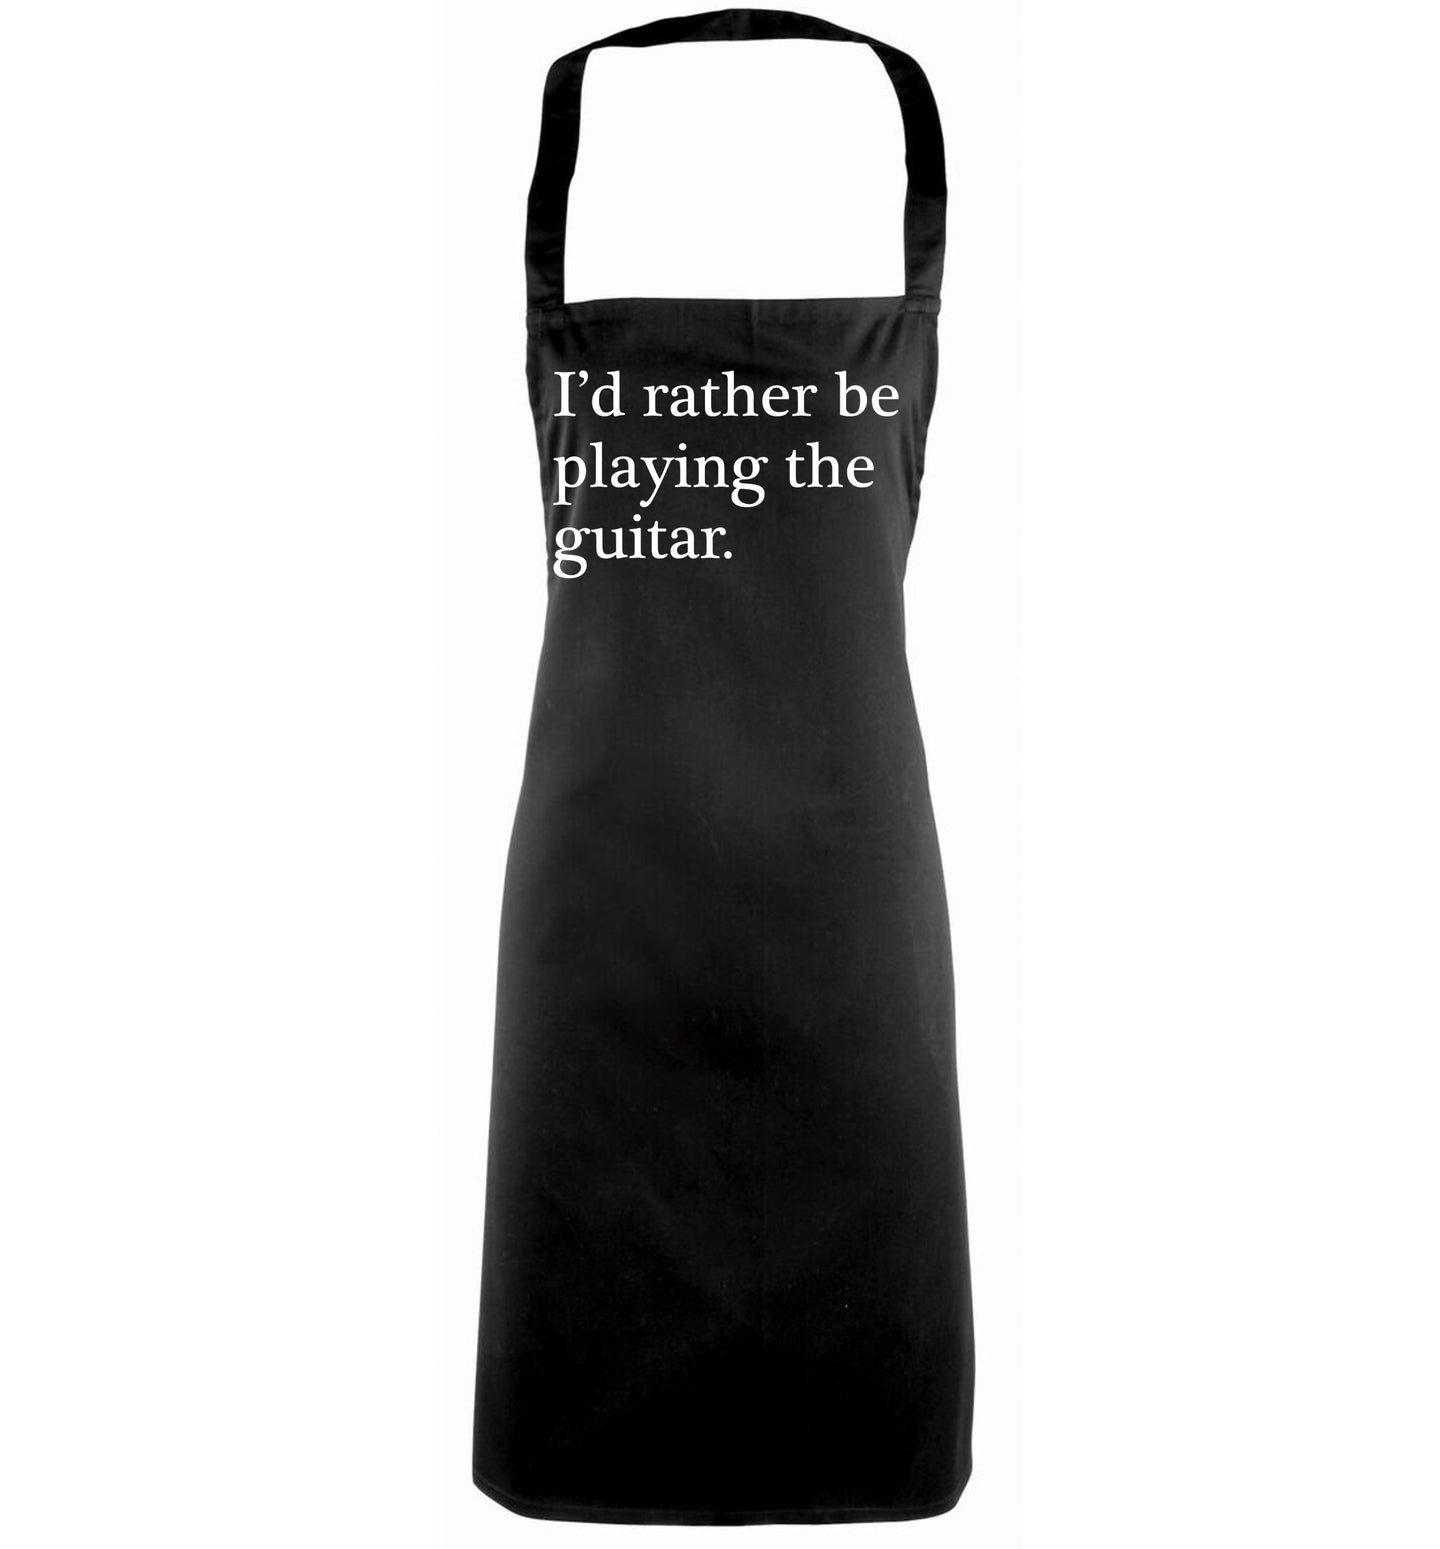 I'd rather be playing the guitar black apron